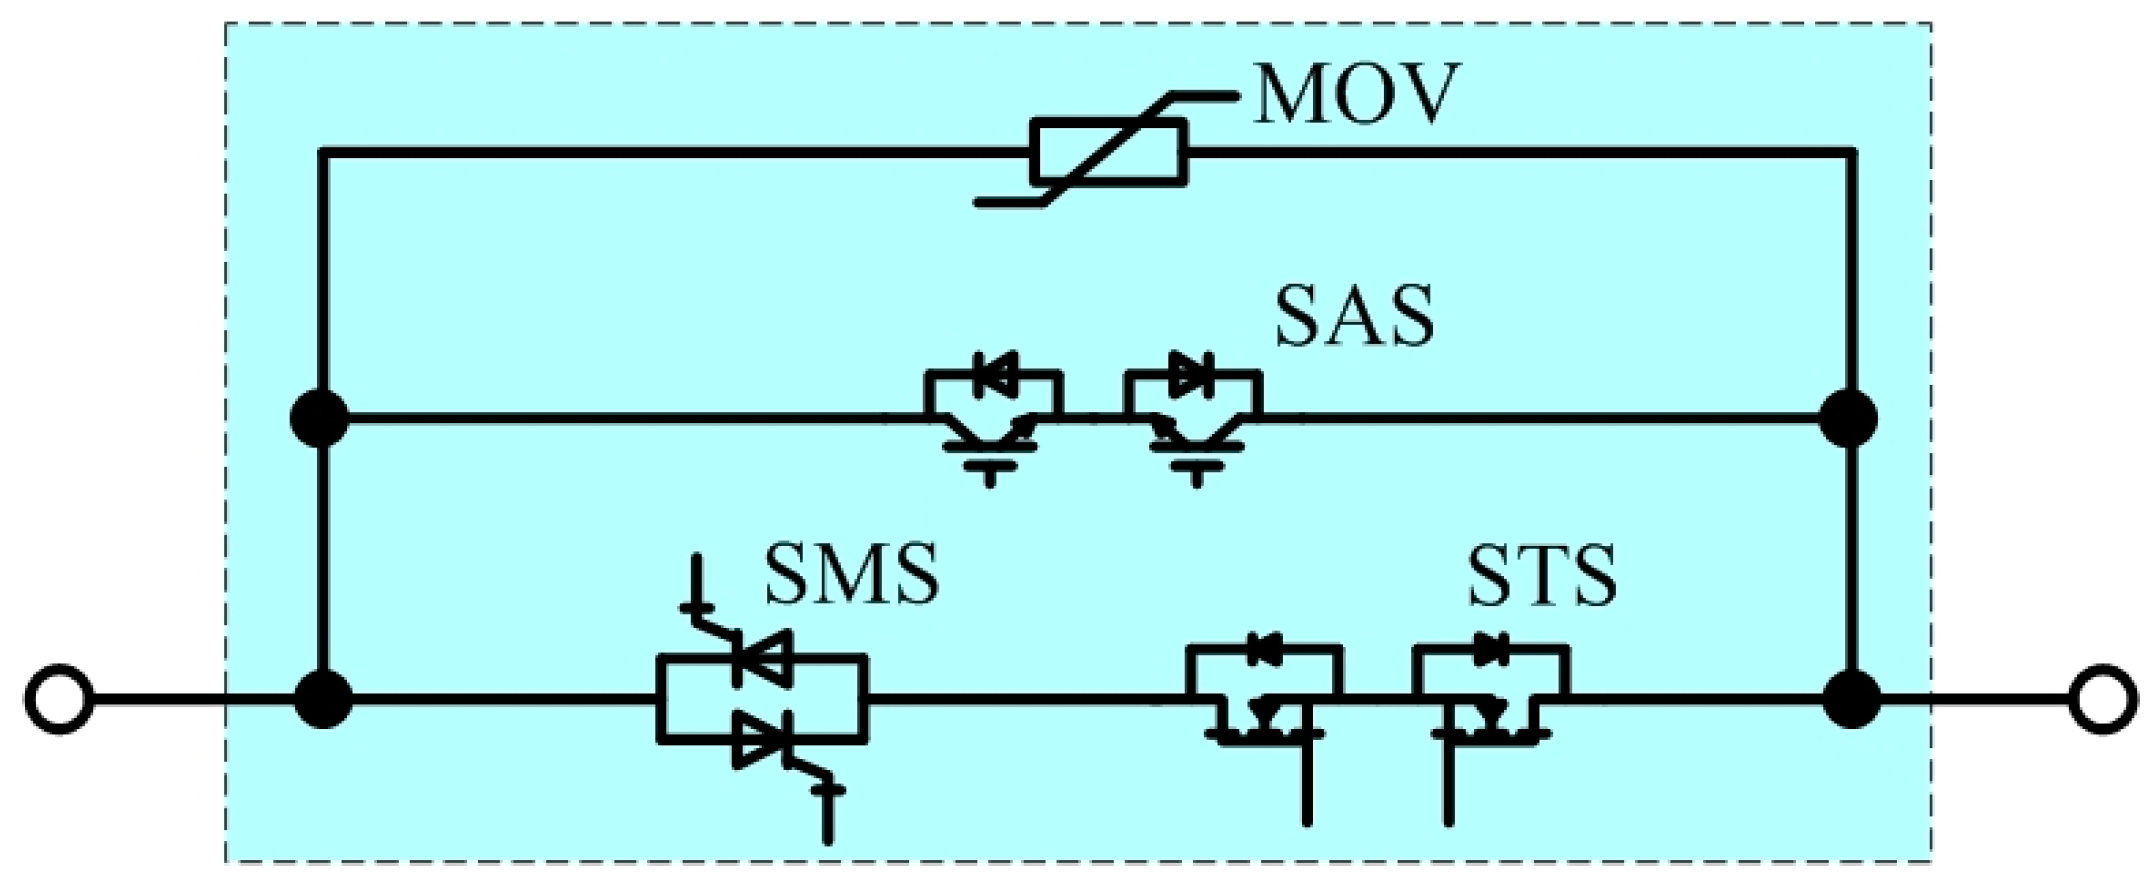 Energies Free Full Text Semiconductor Devices In Solid State Rc Snubber Circuits Design Usage Electronics Basics 10 00495 G032